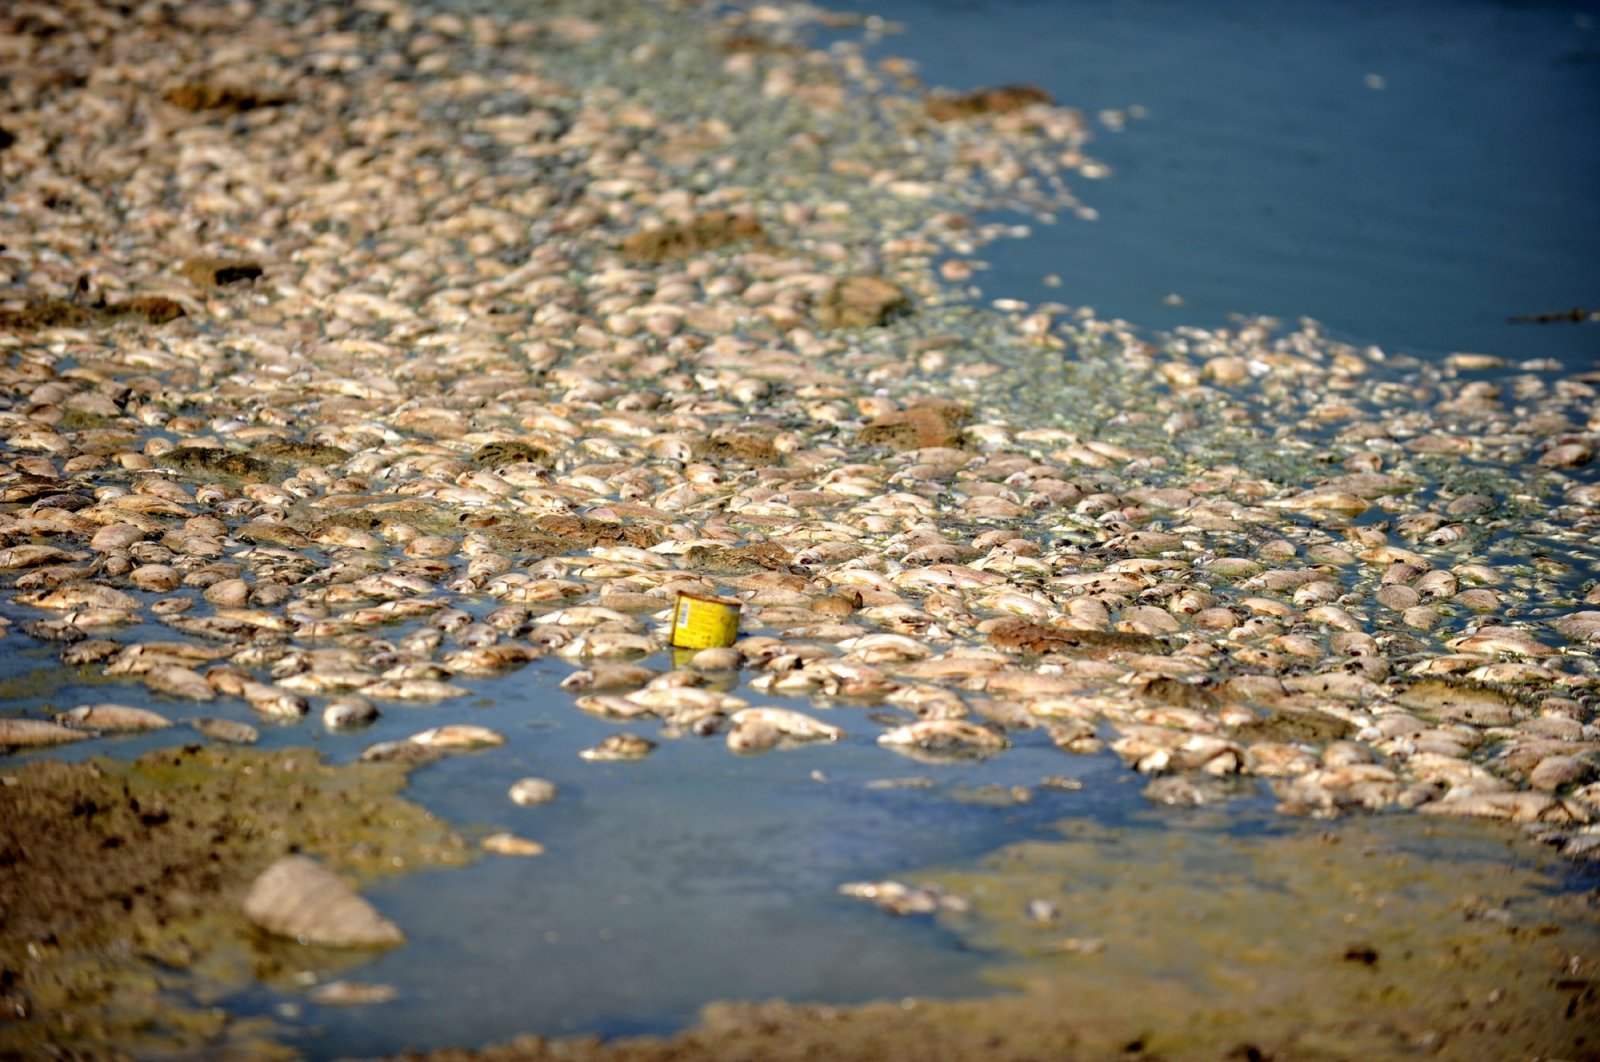 A view of the fish washed ashore at Hasköy Lake in Bursa province in northwestern Turkey, Aug. 26, 2020. (DHA Photo)